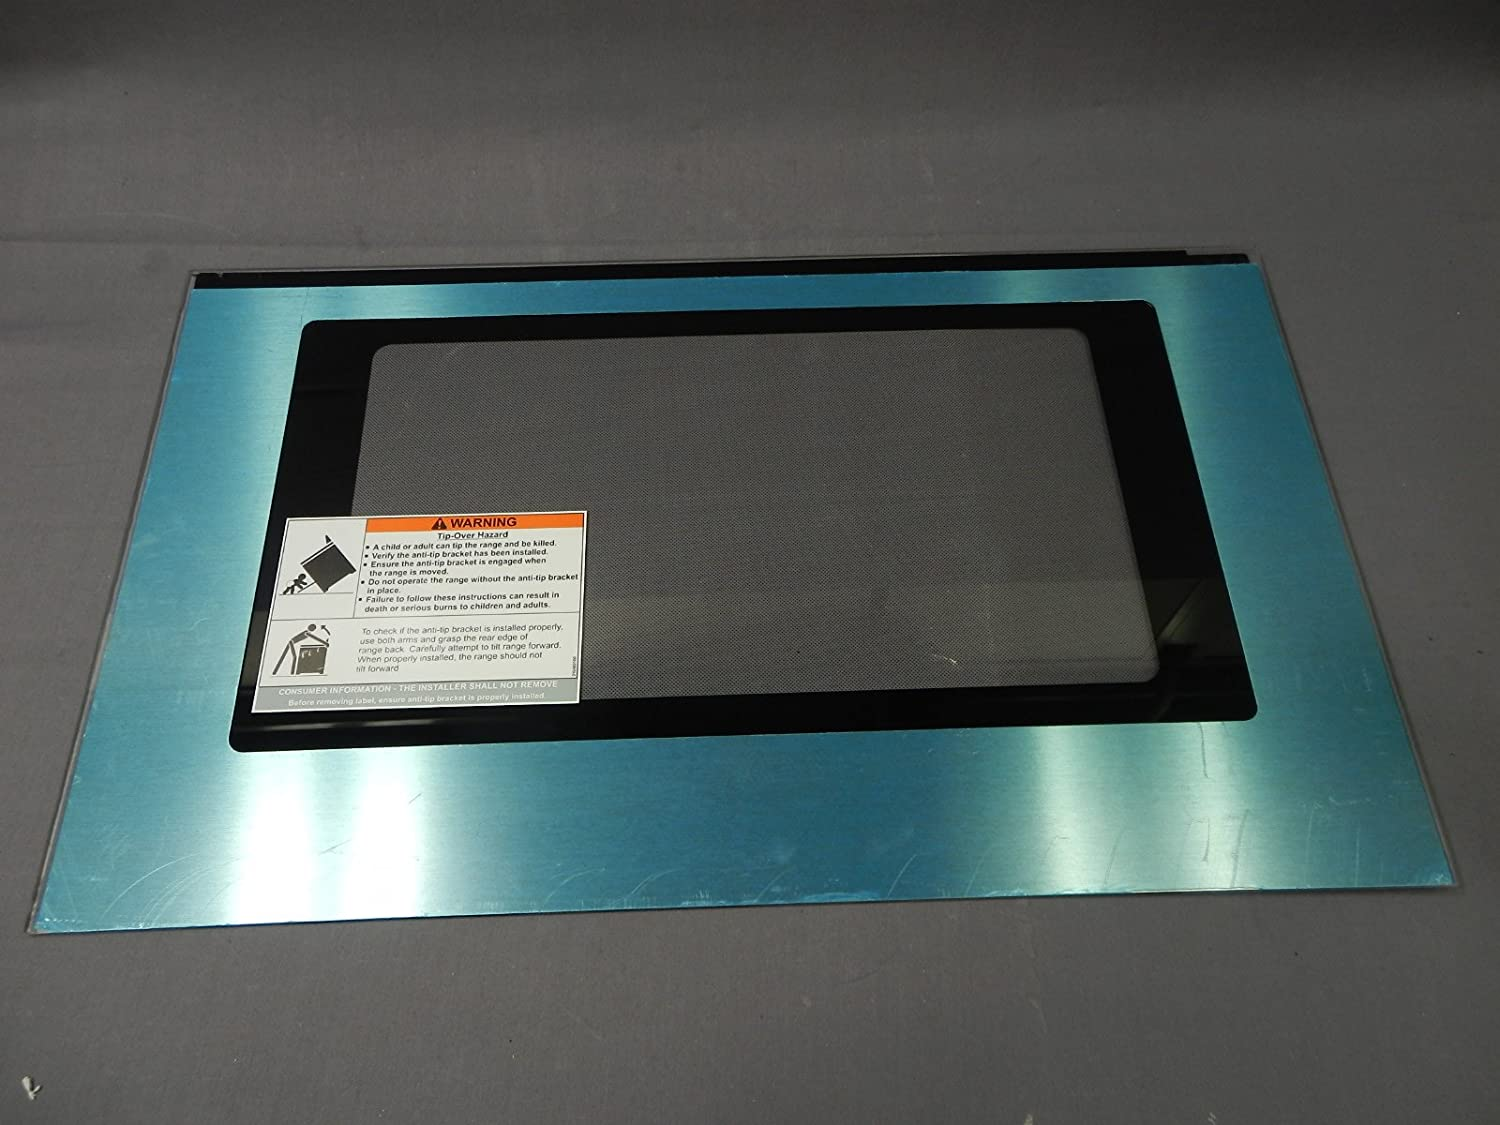 Frigidaire 316453036 Range Oven Door Outer Panel and Foil Tape (Stainless) Genuine Original Equipment Manufacturer (OEM) Part Stainless